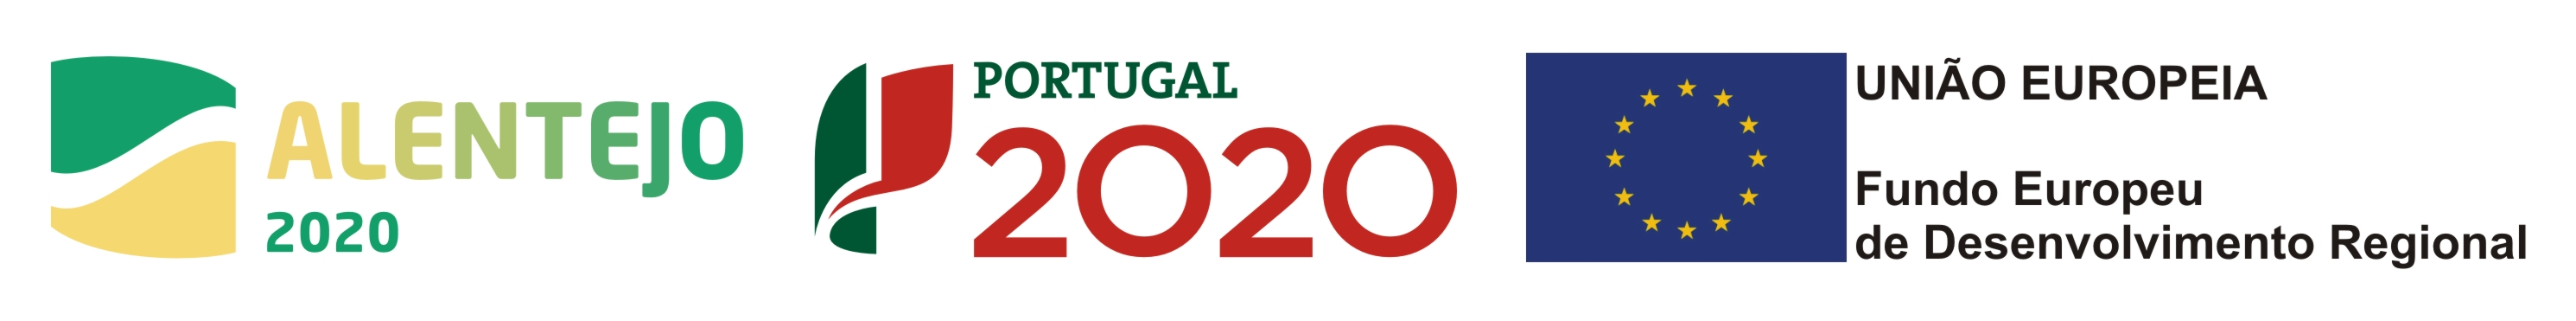 Portugal 2020 barra 3 Logotipos